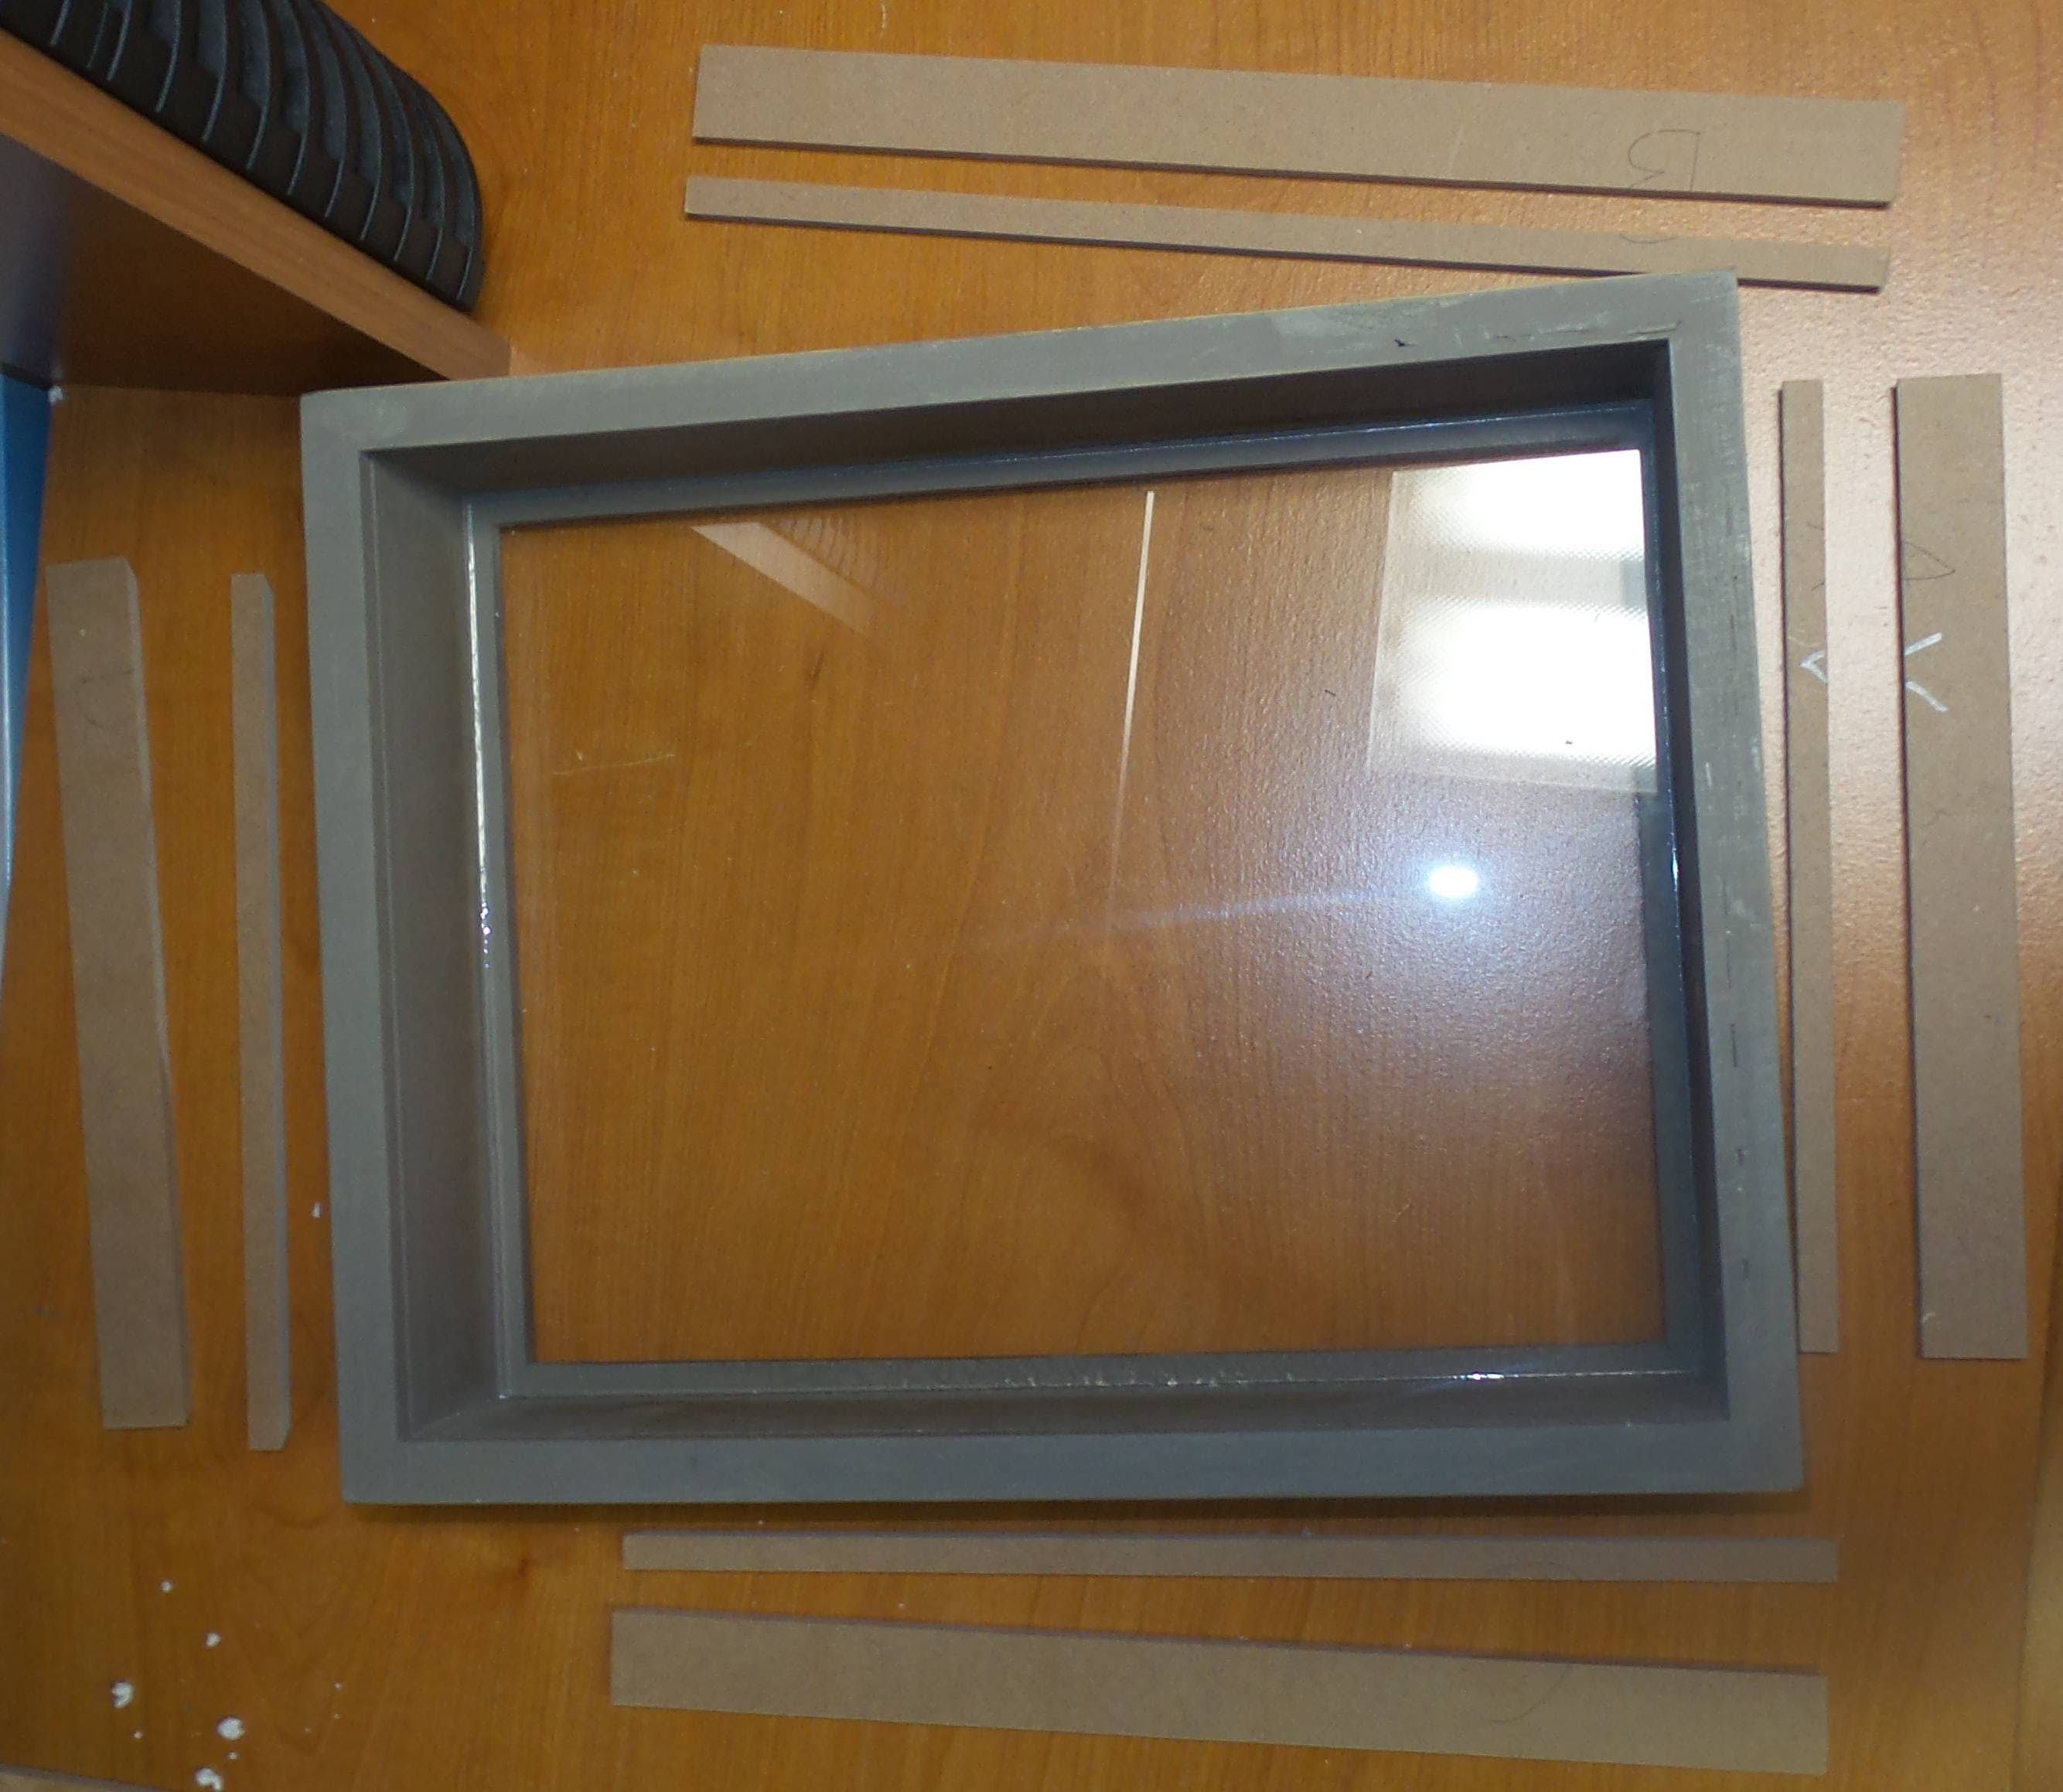 4 sides of the frame with a slot cut in each